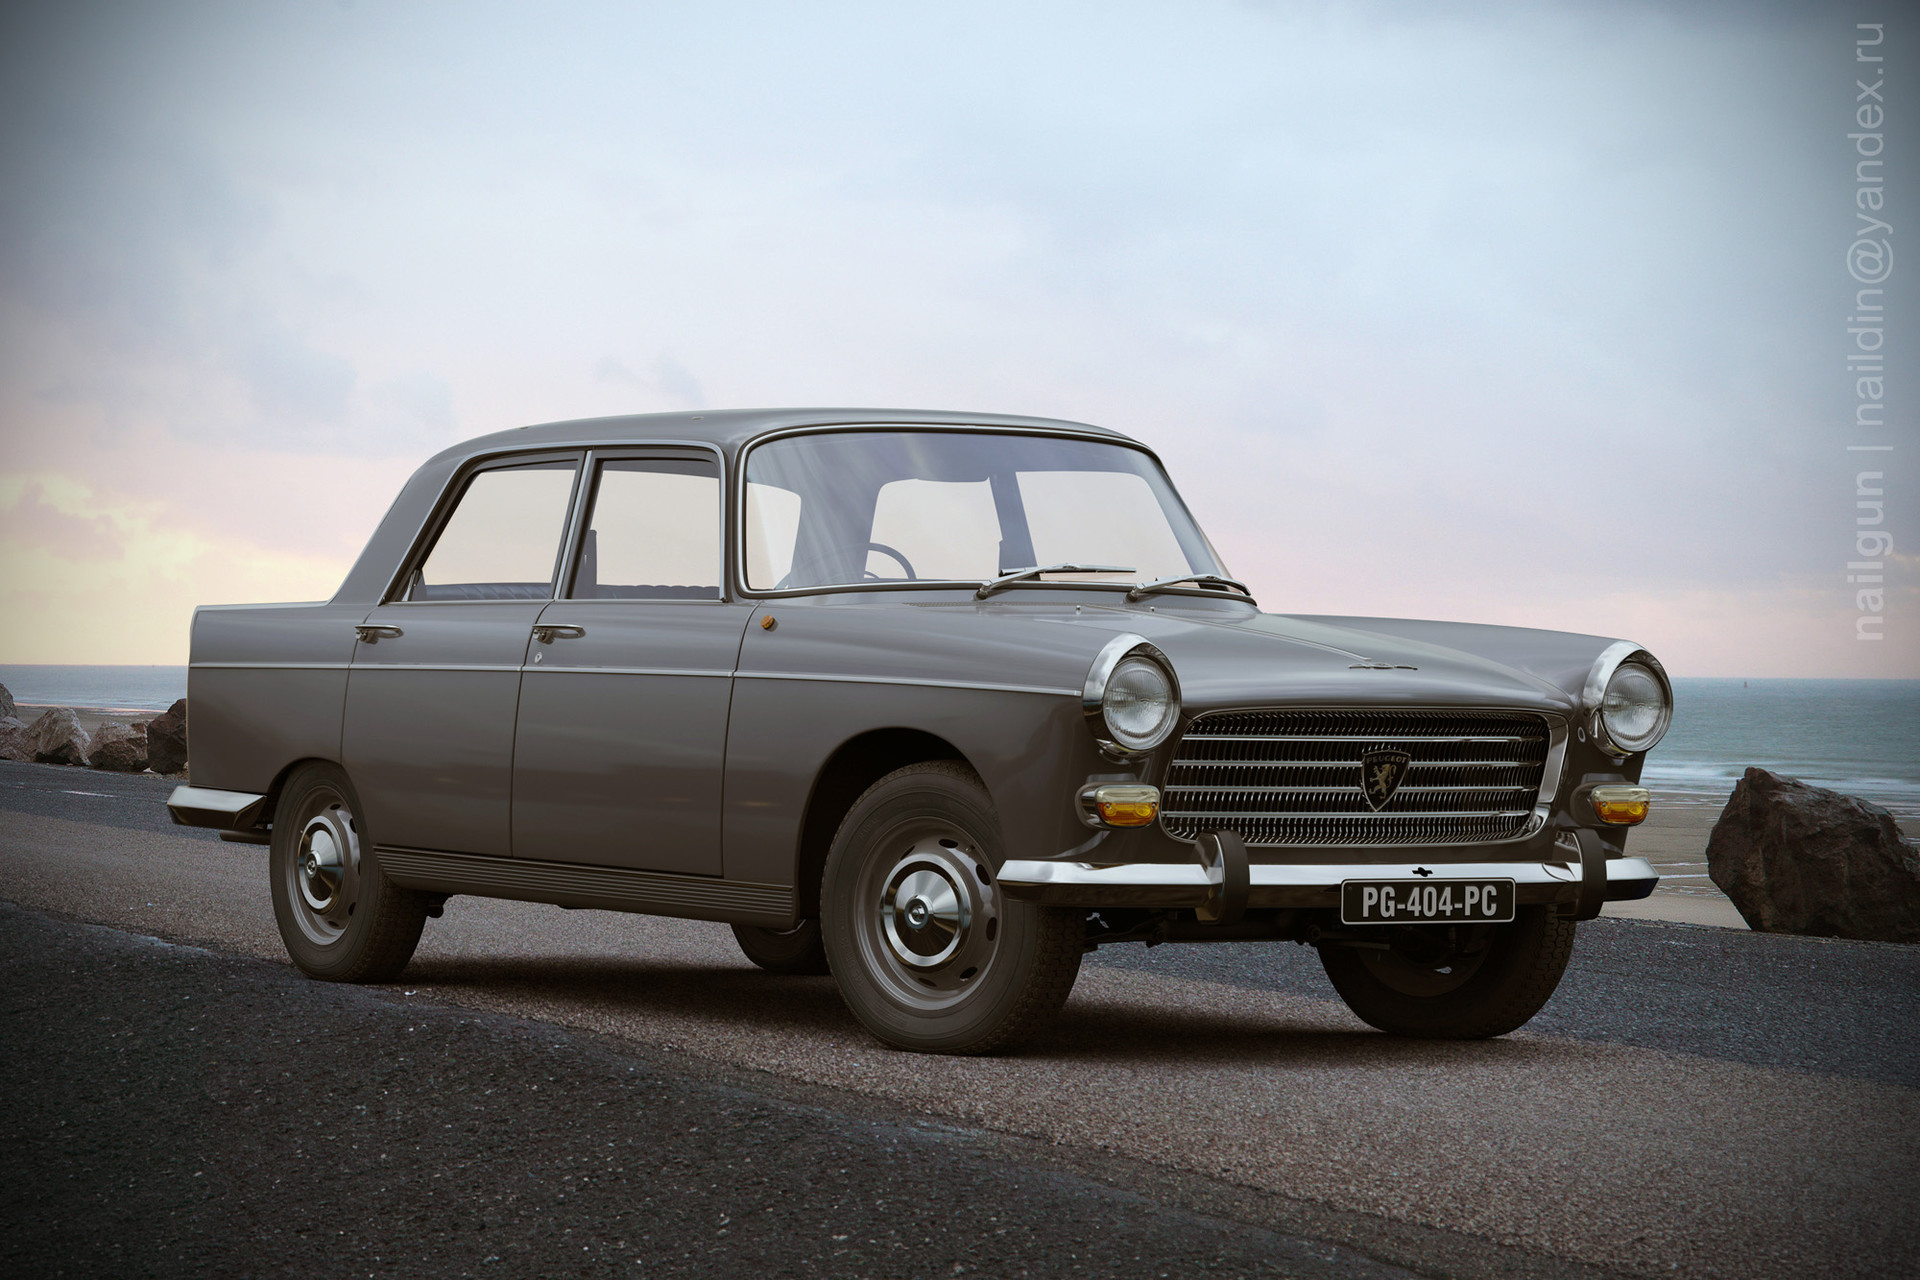 Nail khusnutdinov pwc 047 010 peugeot 404 central page 3x color